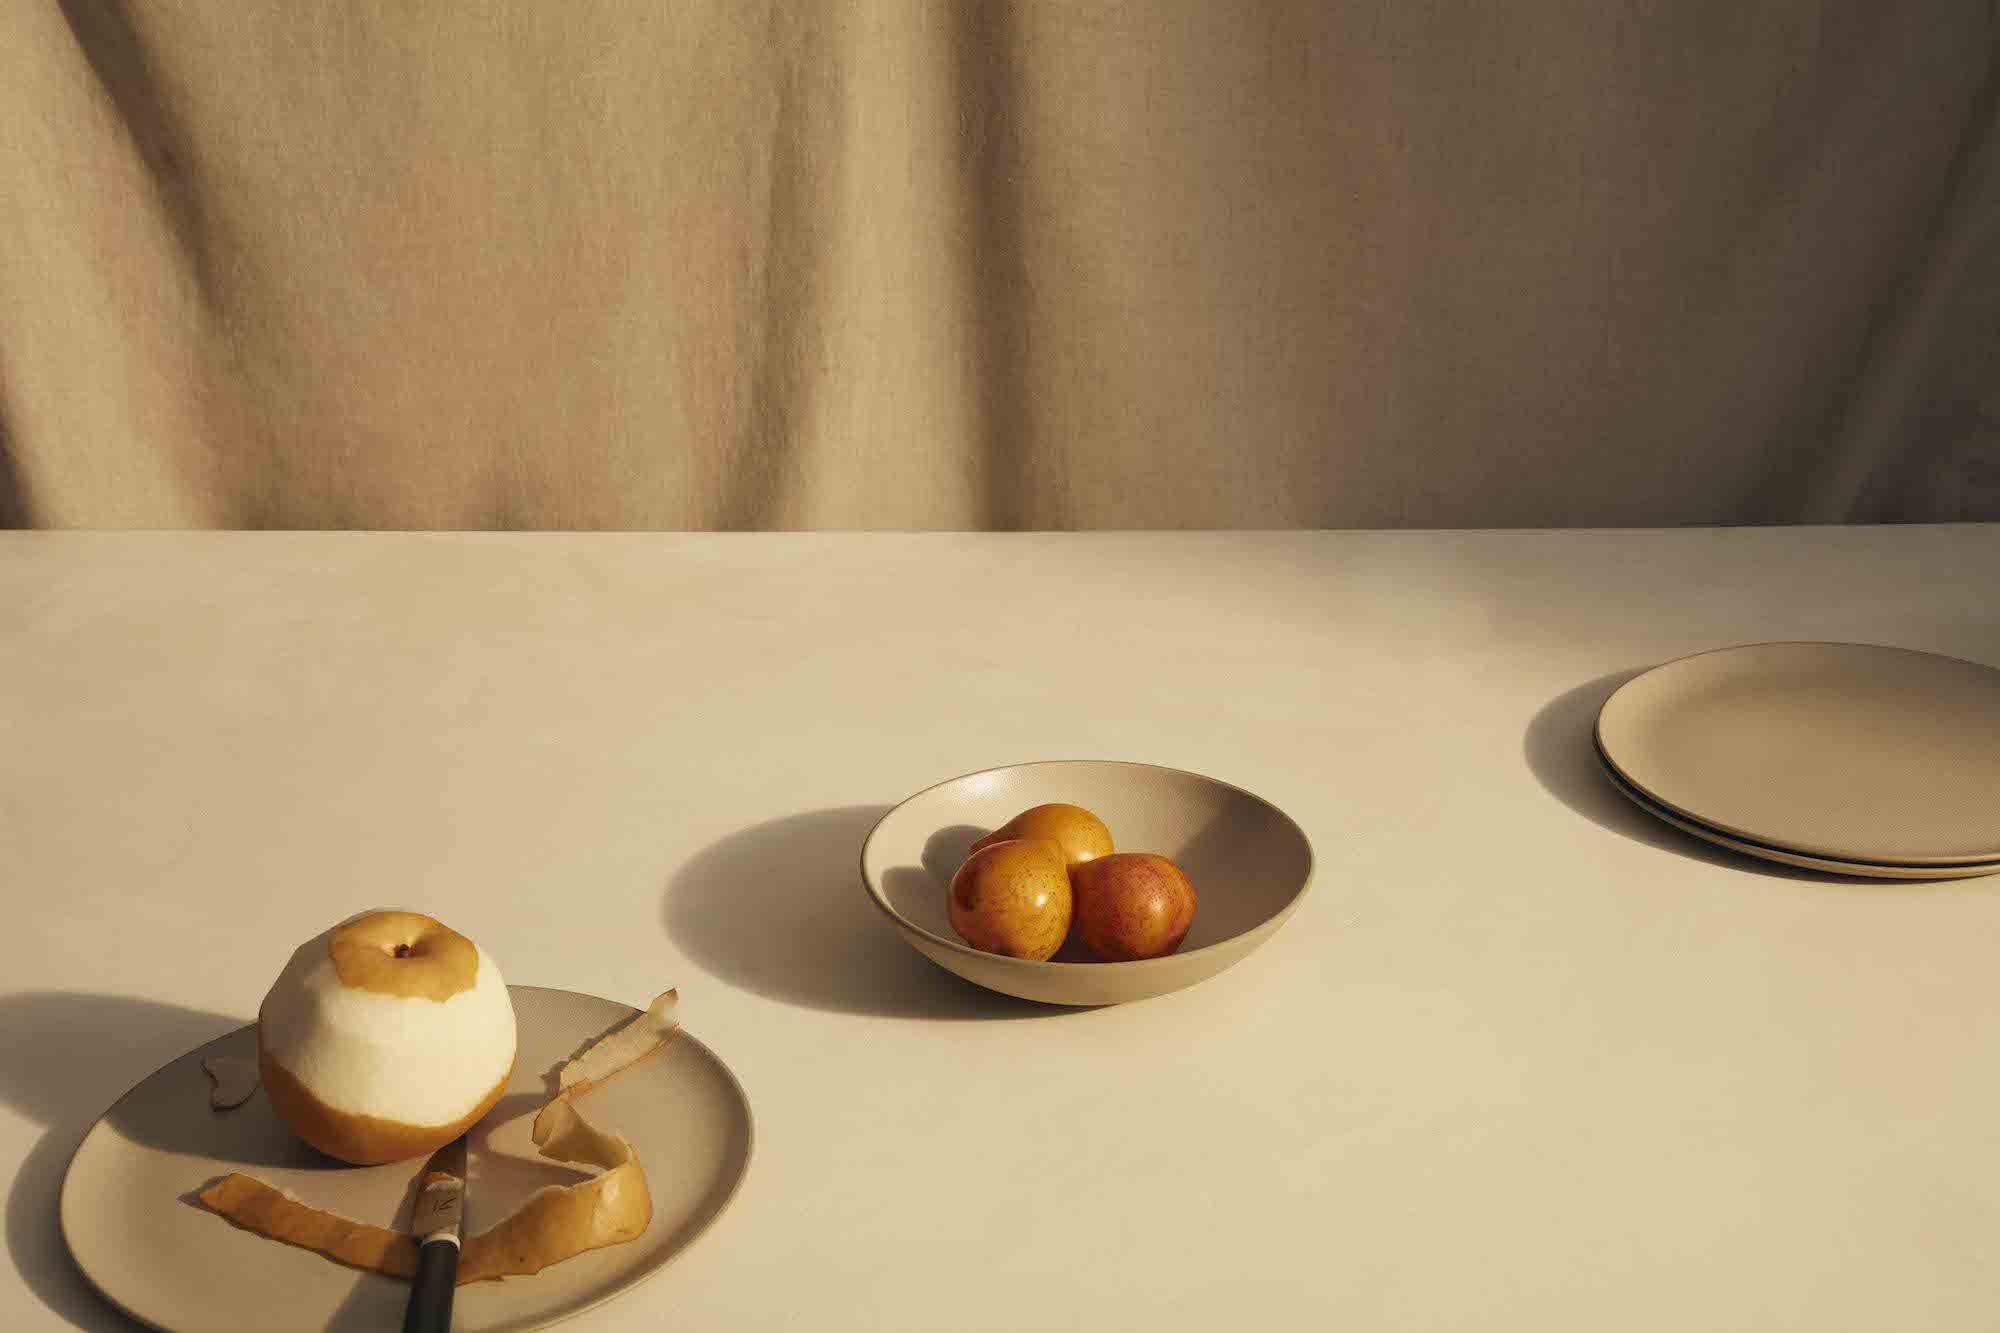 Material Dishware, Bowls with Fruit